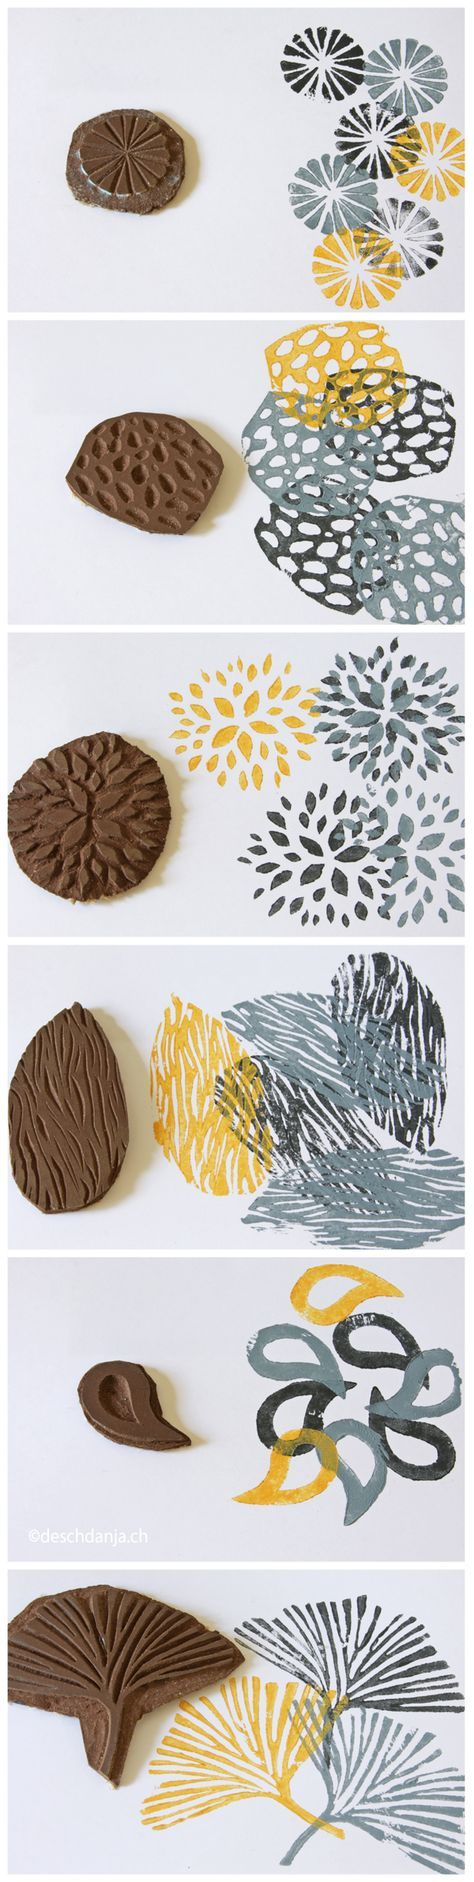 #papercraft #stamping #stamps are homemade self made stamps and their prints